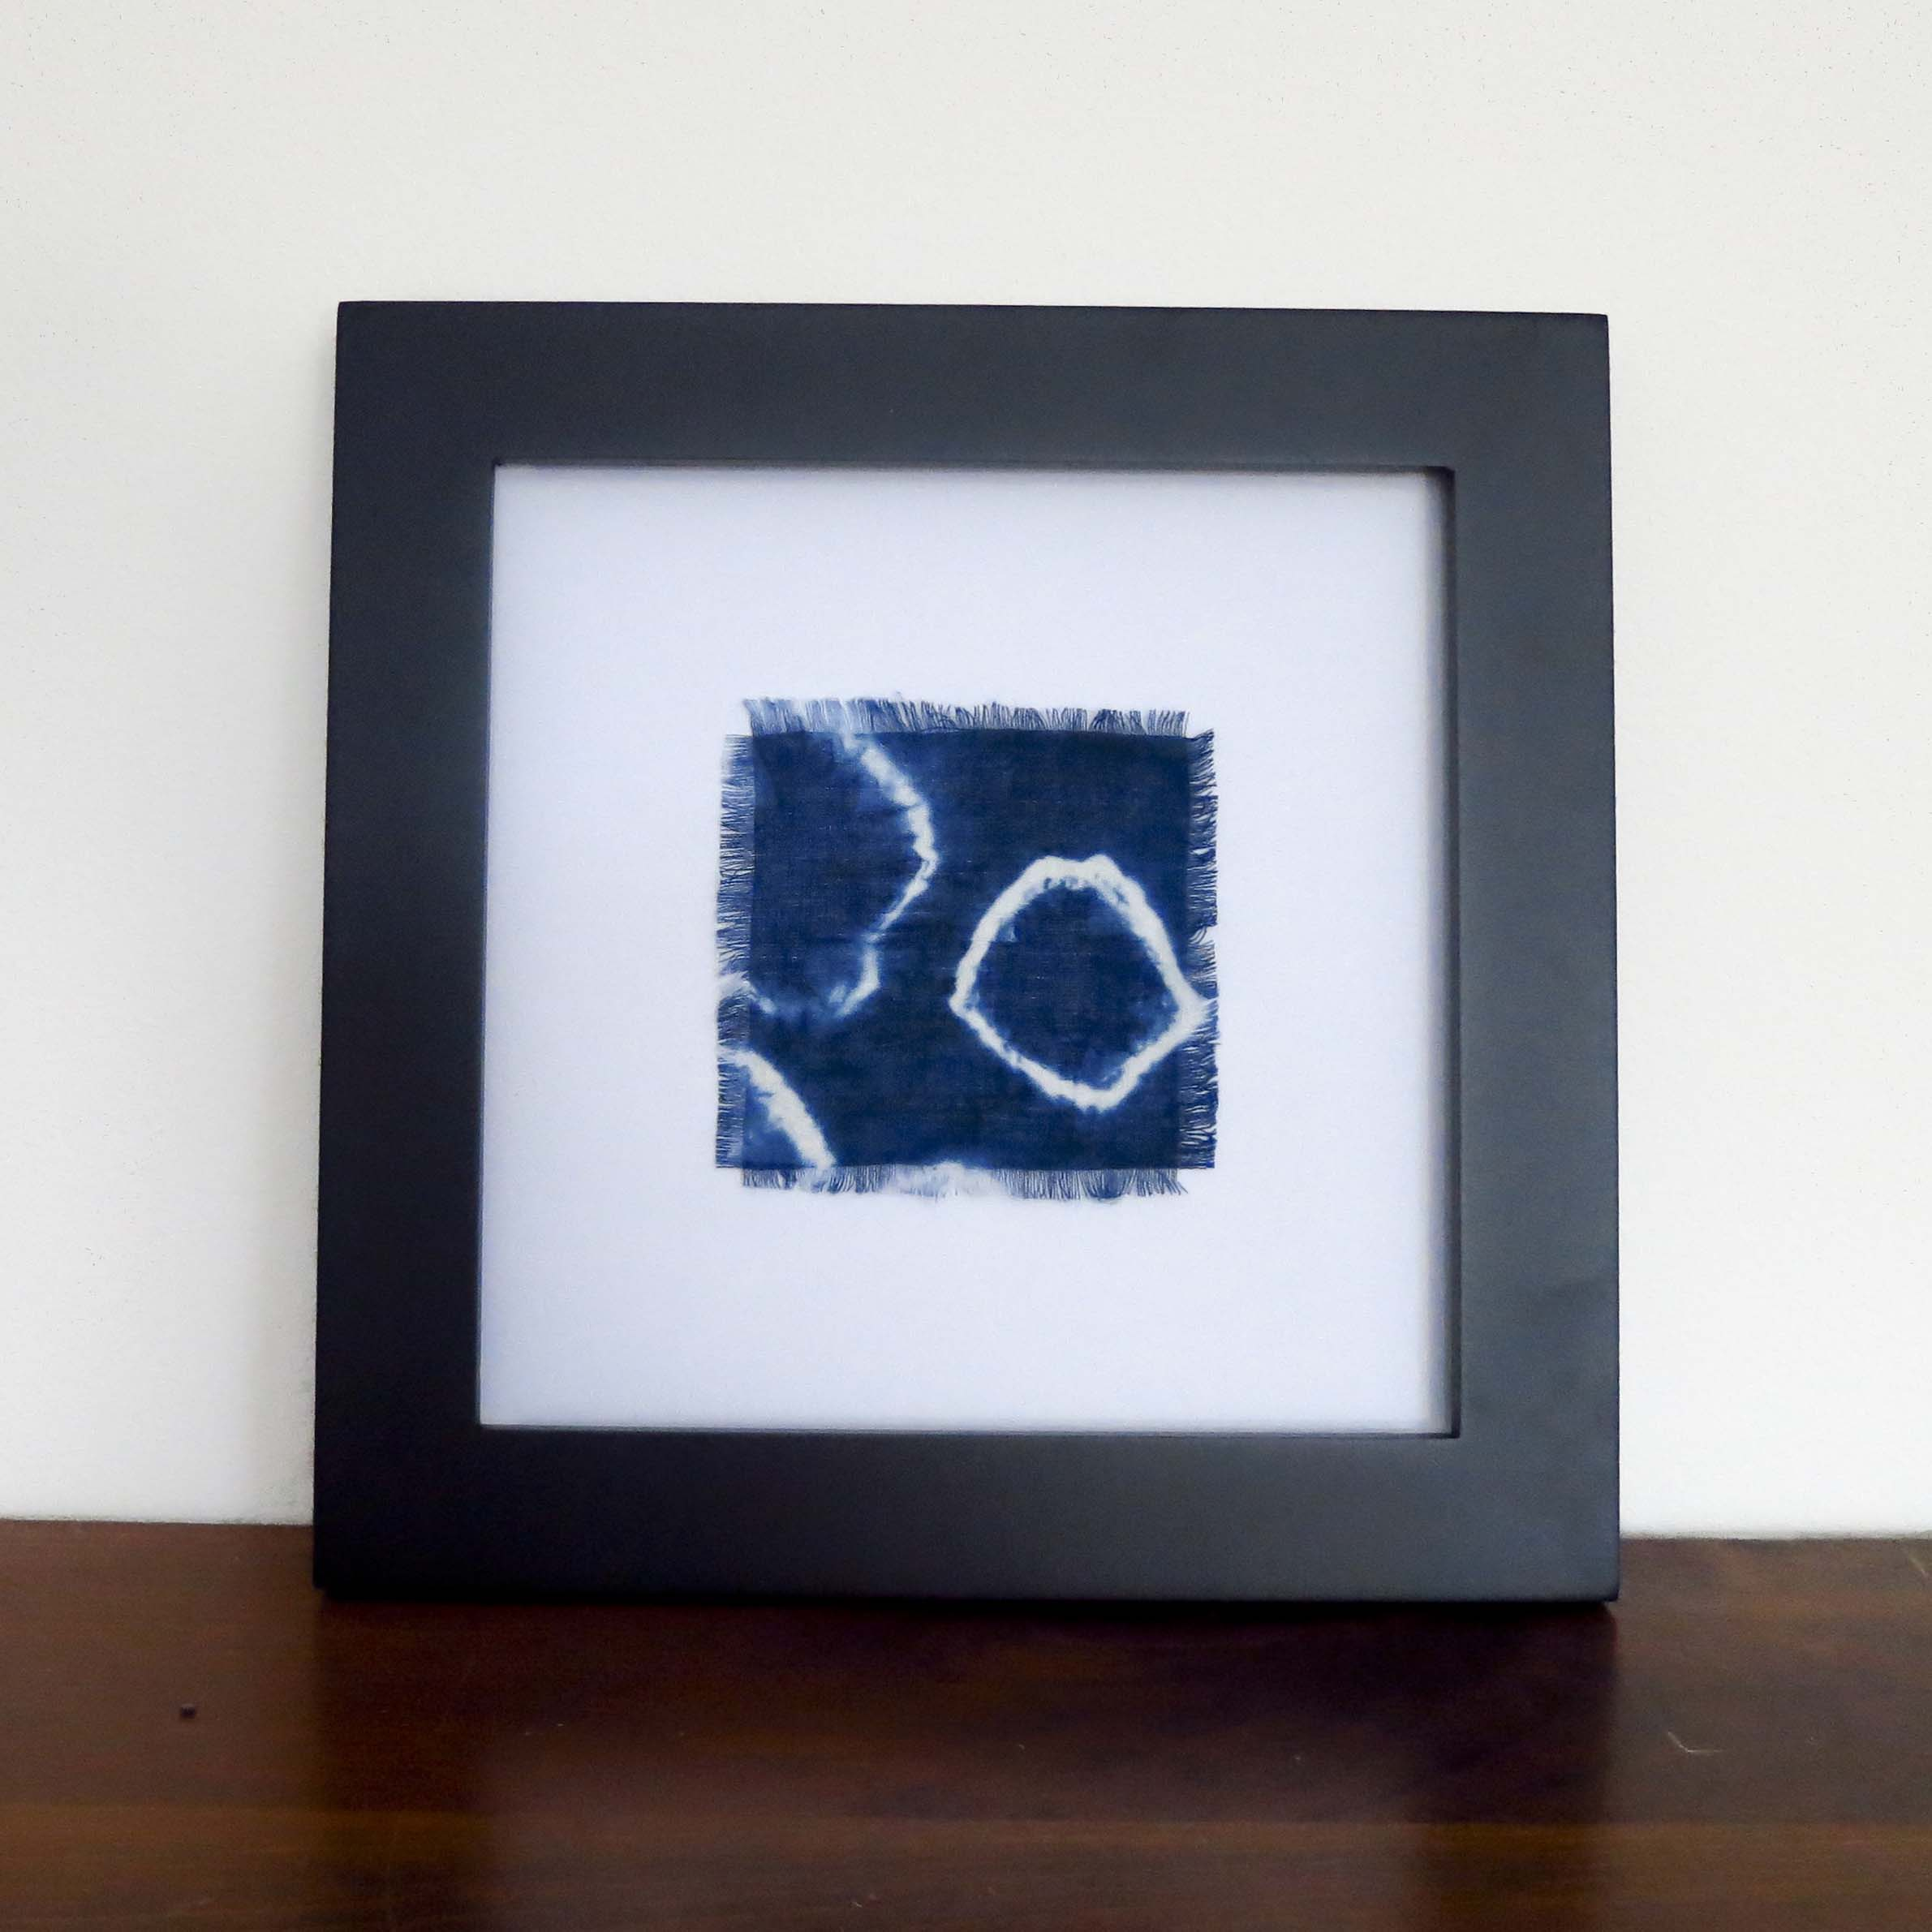 Framed Shibori Hand Dyed Linen Swatch – $35